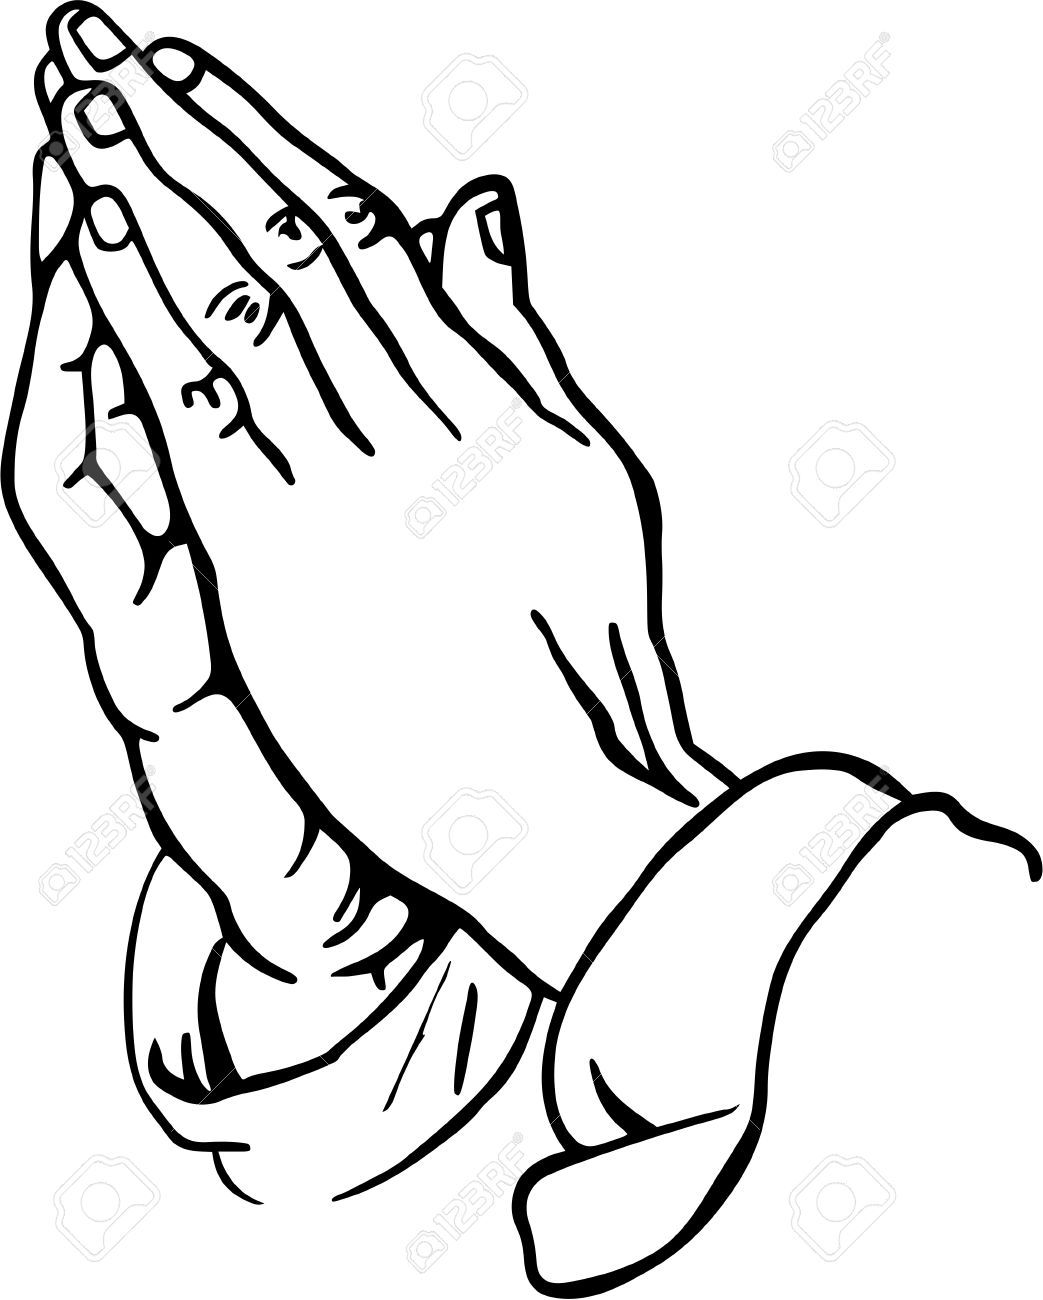 praying hands clipart stock photo picture and royalty free image rh pinterest com au praying hands clipart praying hands clipart free